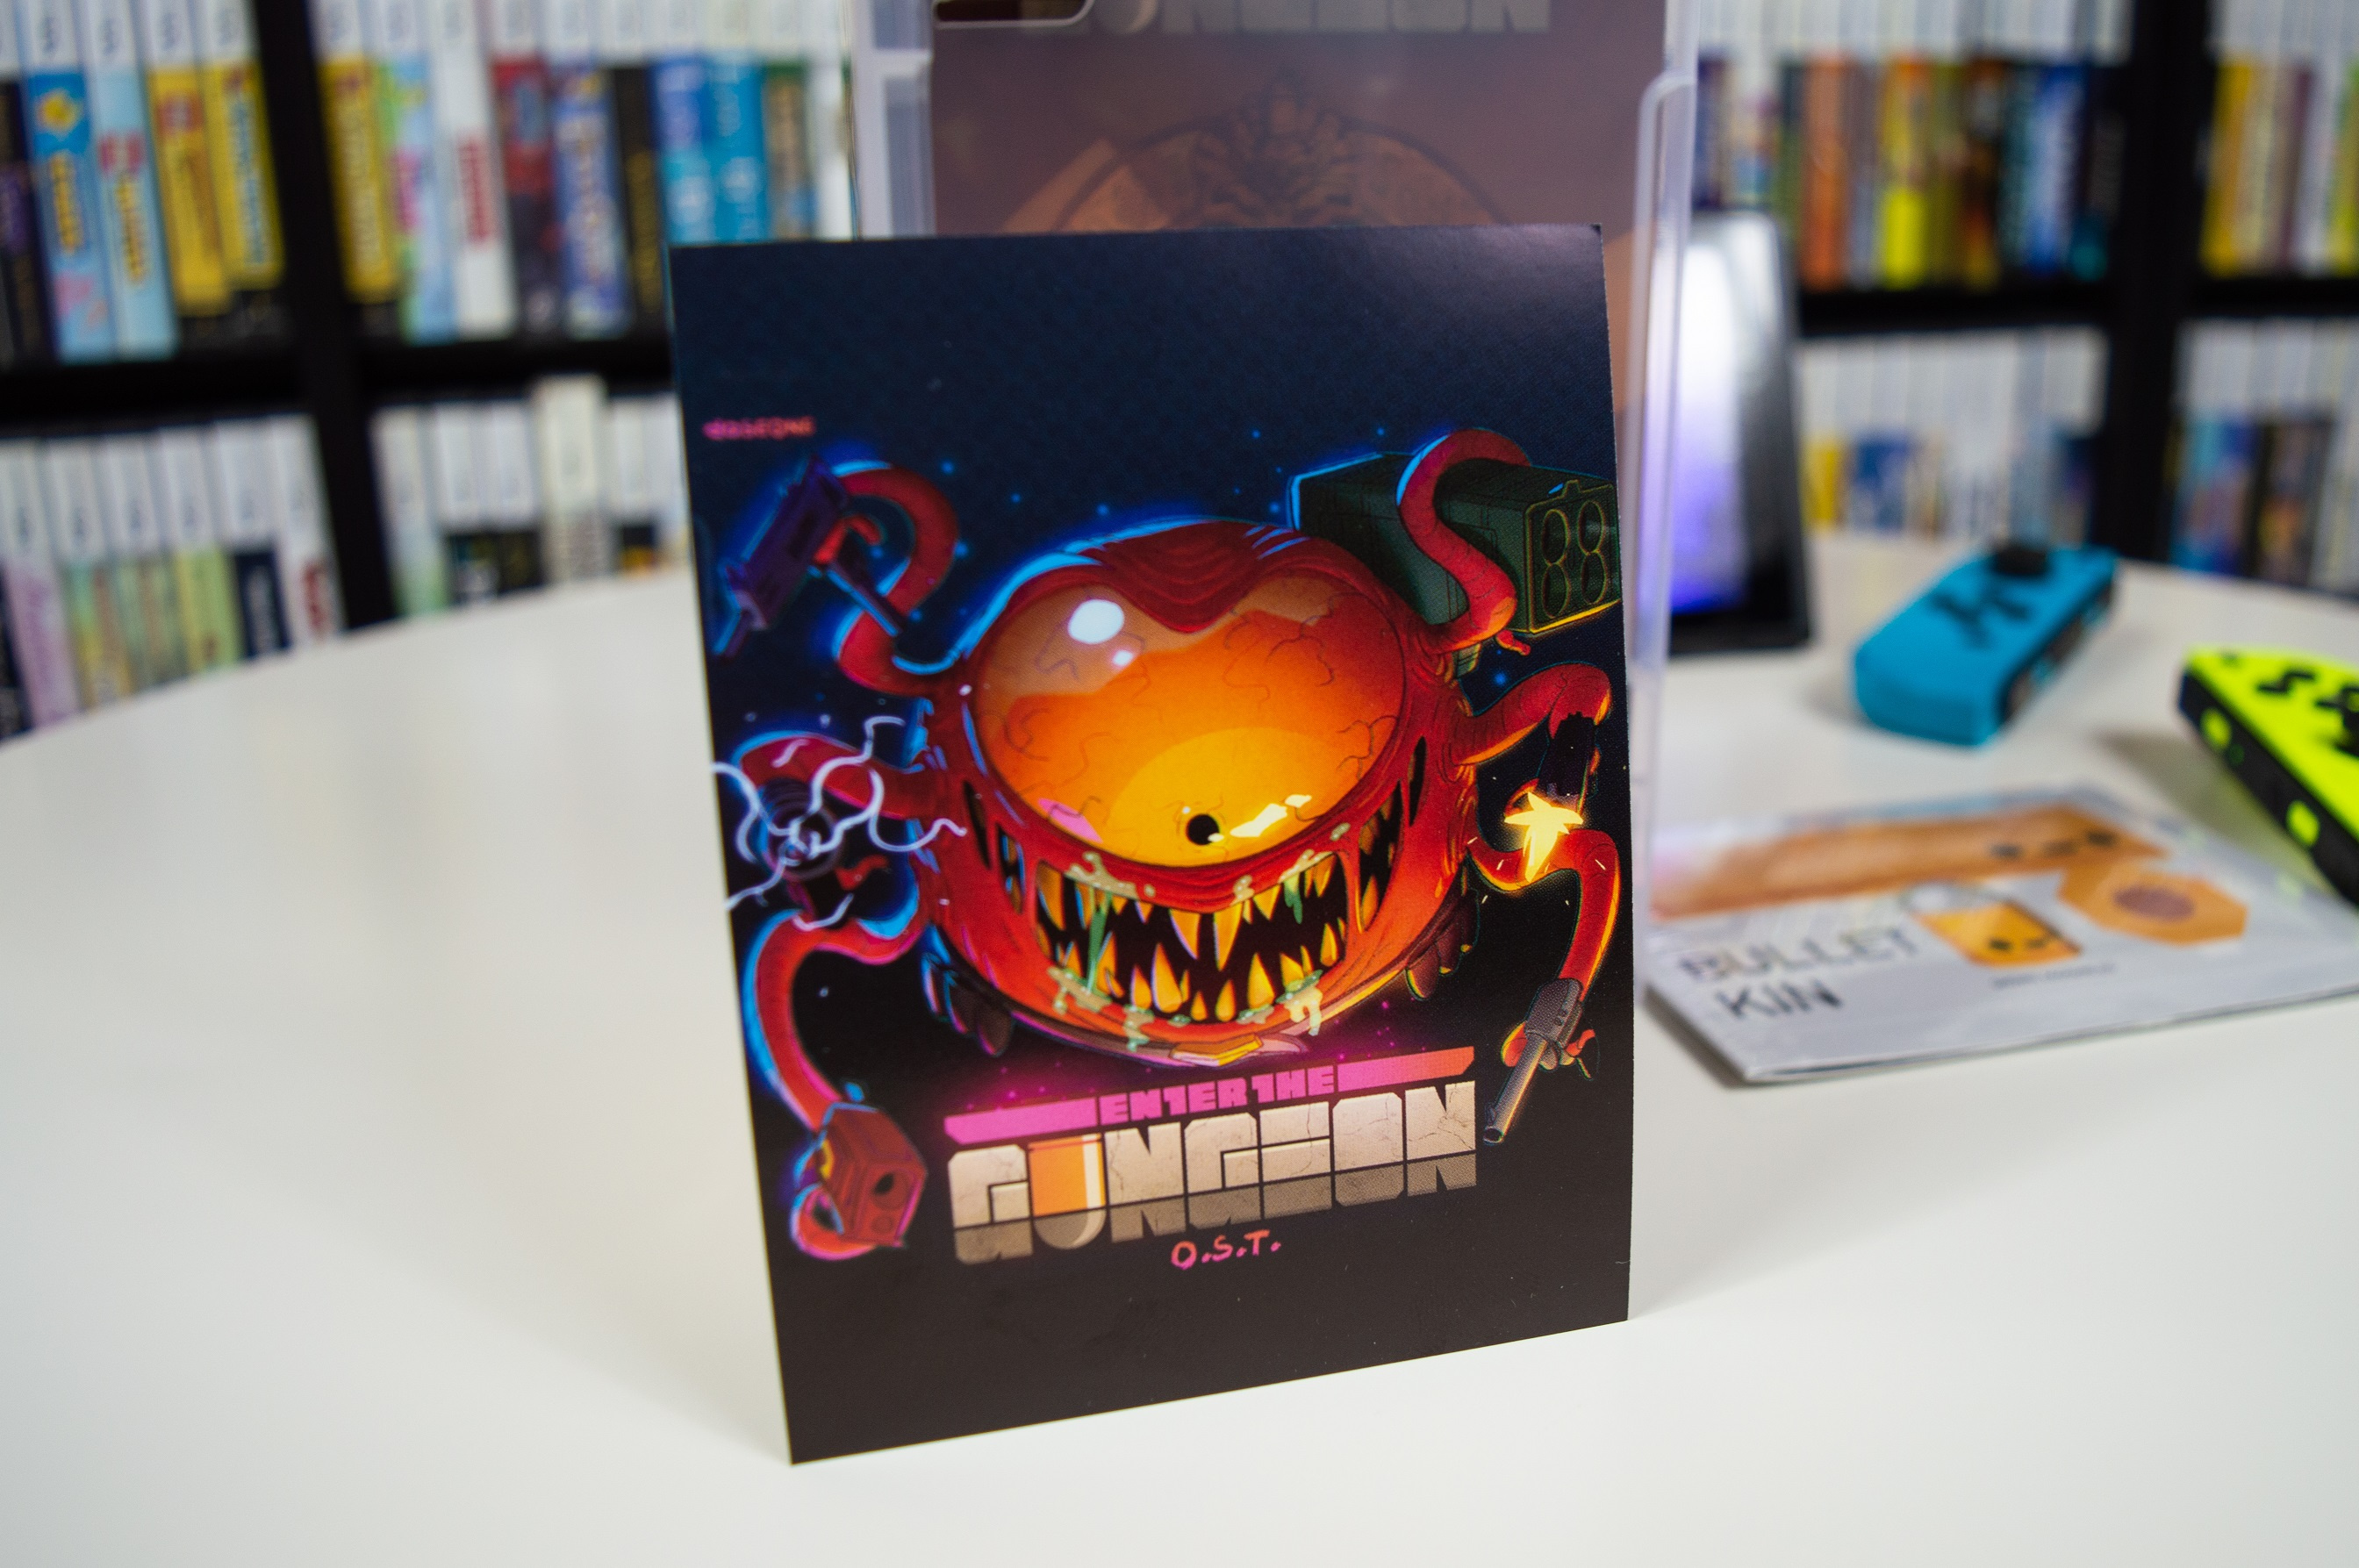 Hands On: Enter The Gungeon's Physical Edition Is Sure To